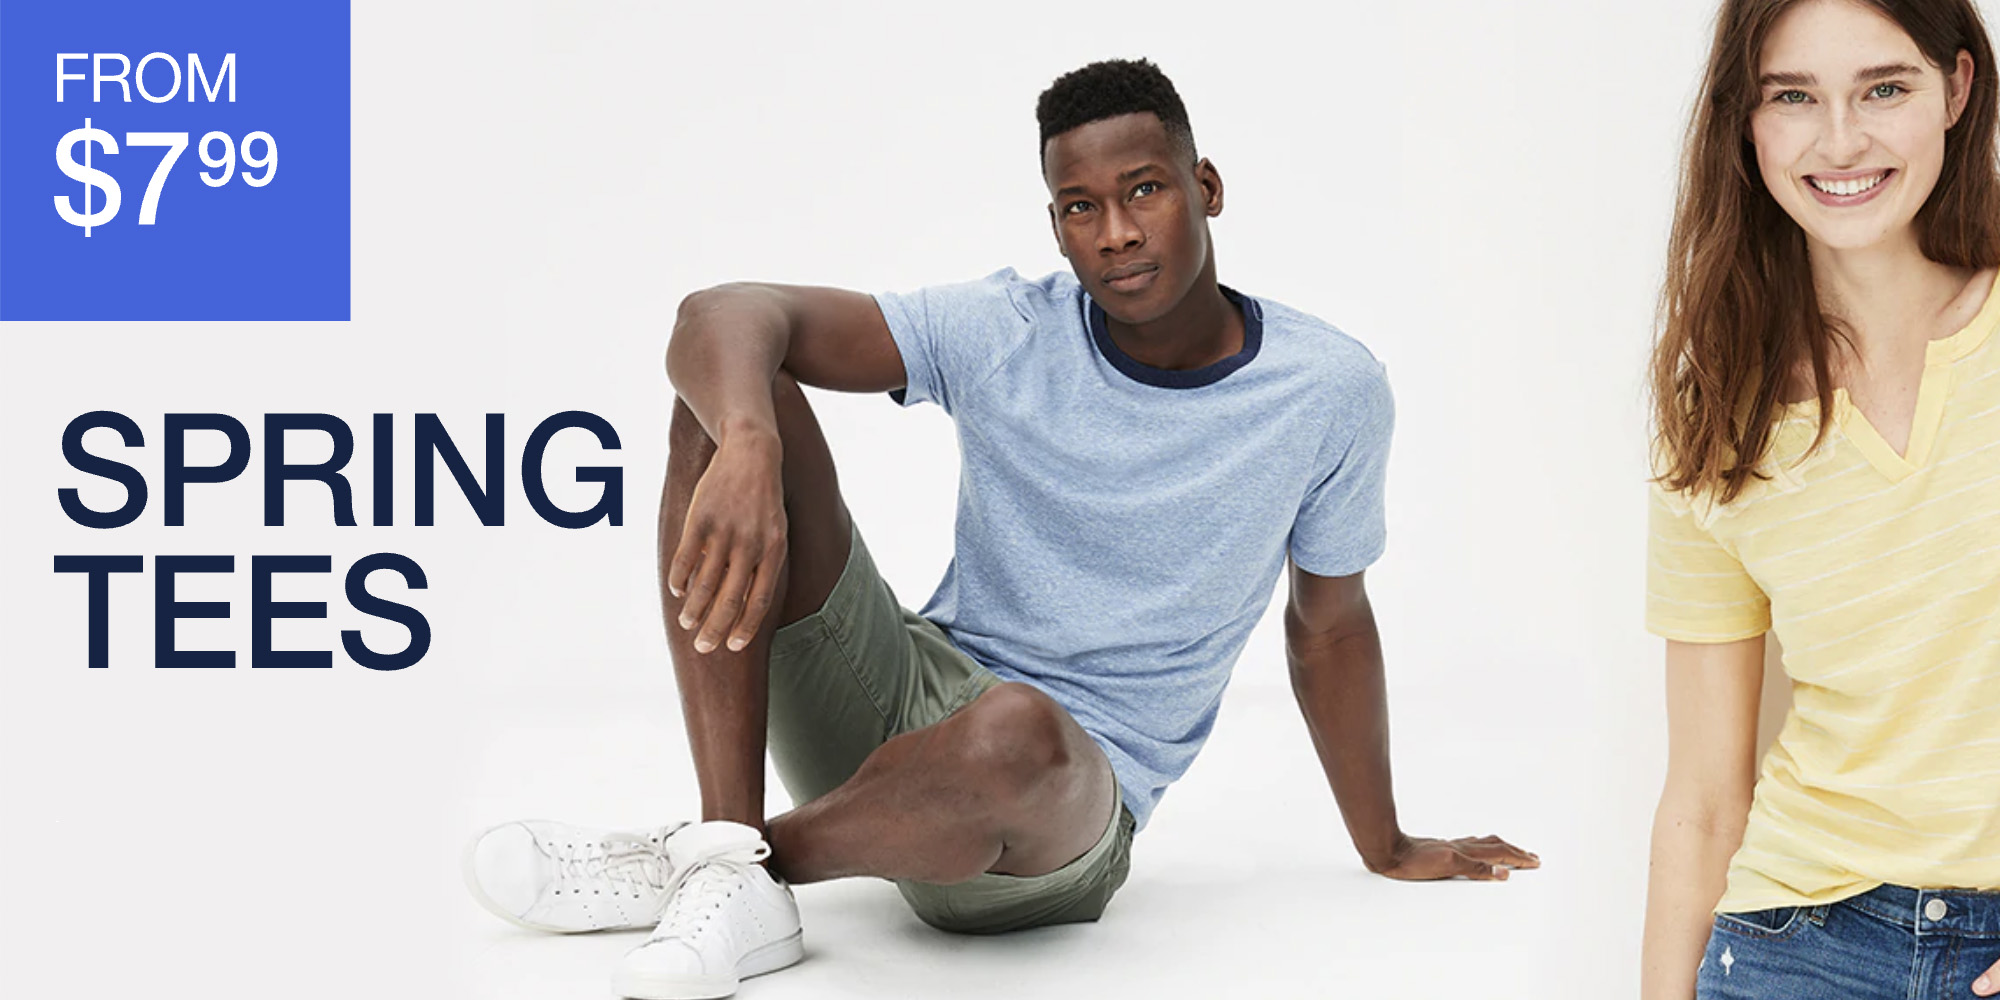 GAP Factory's Spring Sale offers up to 60% off all t-shirts, shorts, dresses & more from just $8